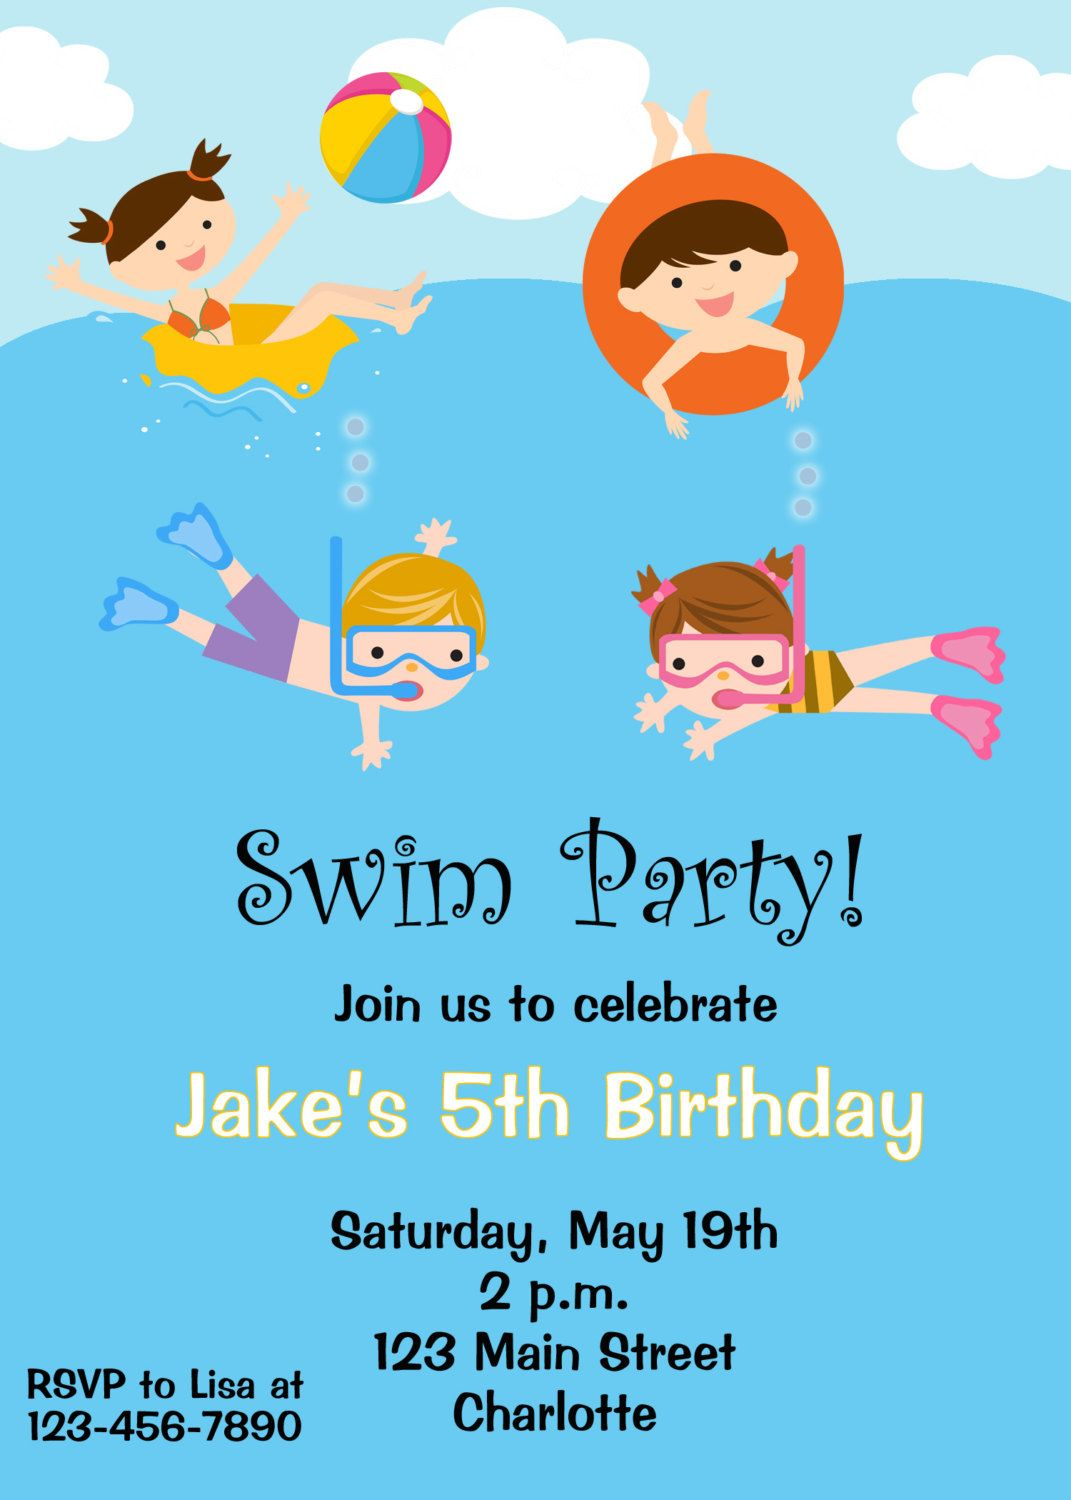 pool party birthday invitation em portugues Pesquisa Google – Free Printable Pool Party Birthday Invitations